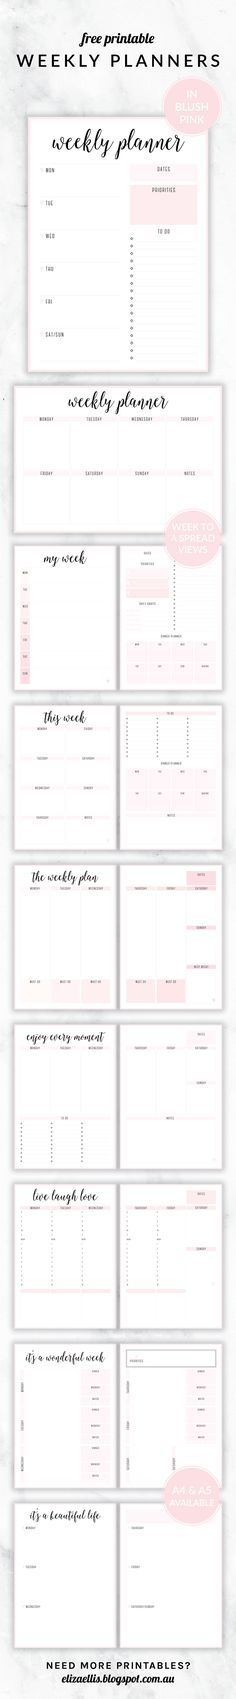 Free Printable Irma Weekly Planners in Blush by Eliza Ellis. With nine different styles, they're the perfect organizing solution for mums, entrepreneurs, bloggers, etsy sellers, professionals, WAHM's, SAHM's, students and moms. Available in 6 colors and both A4 and A5 sizes. Includes week to a page planners as well as week to a spread and two page planners. Enjoy!